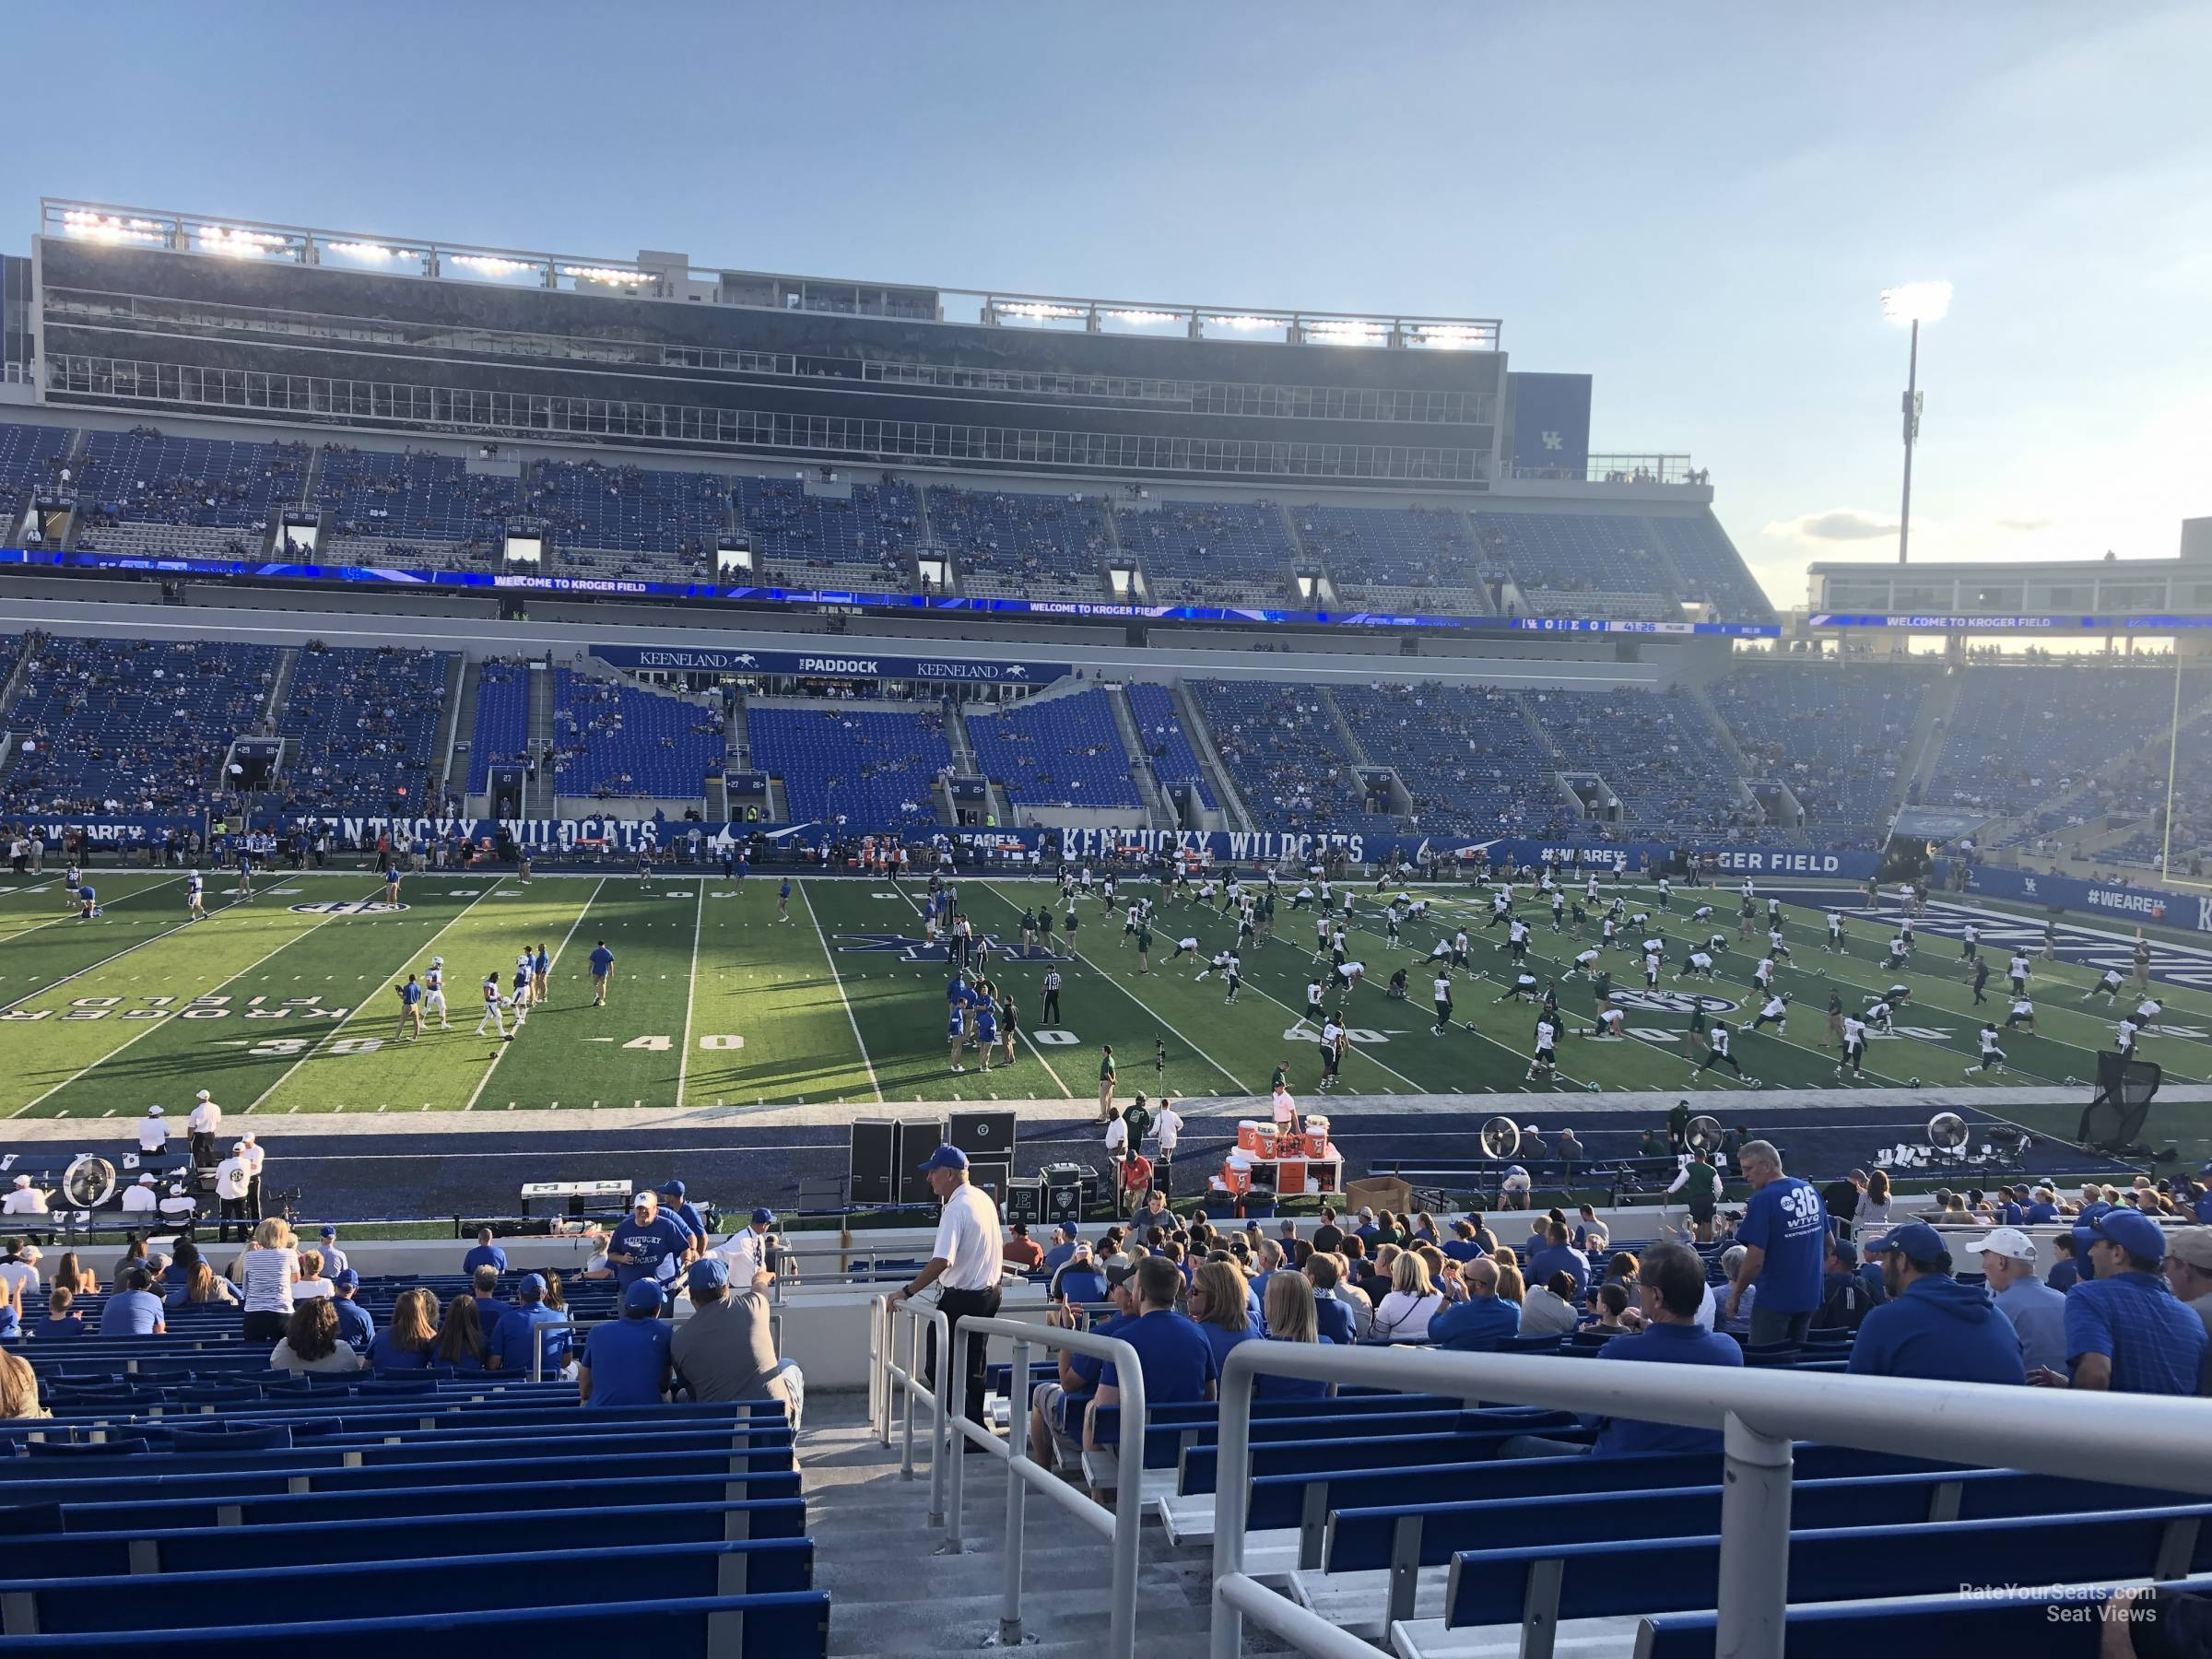 Section 5 seat view